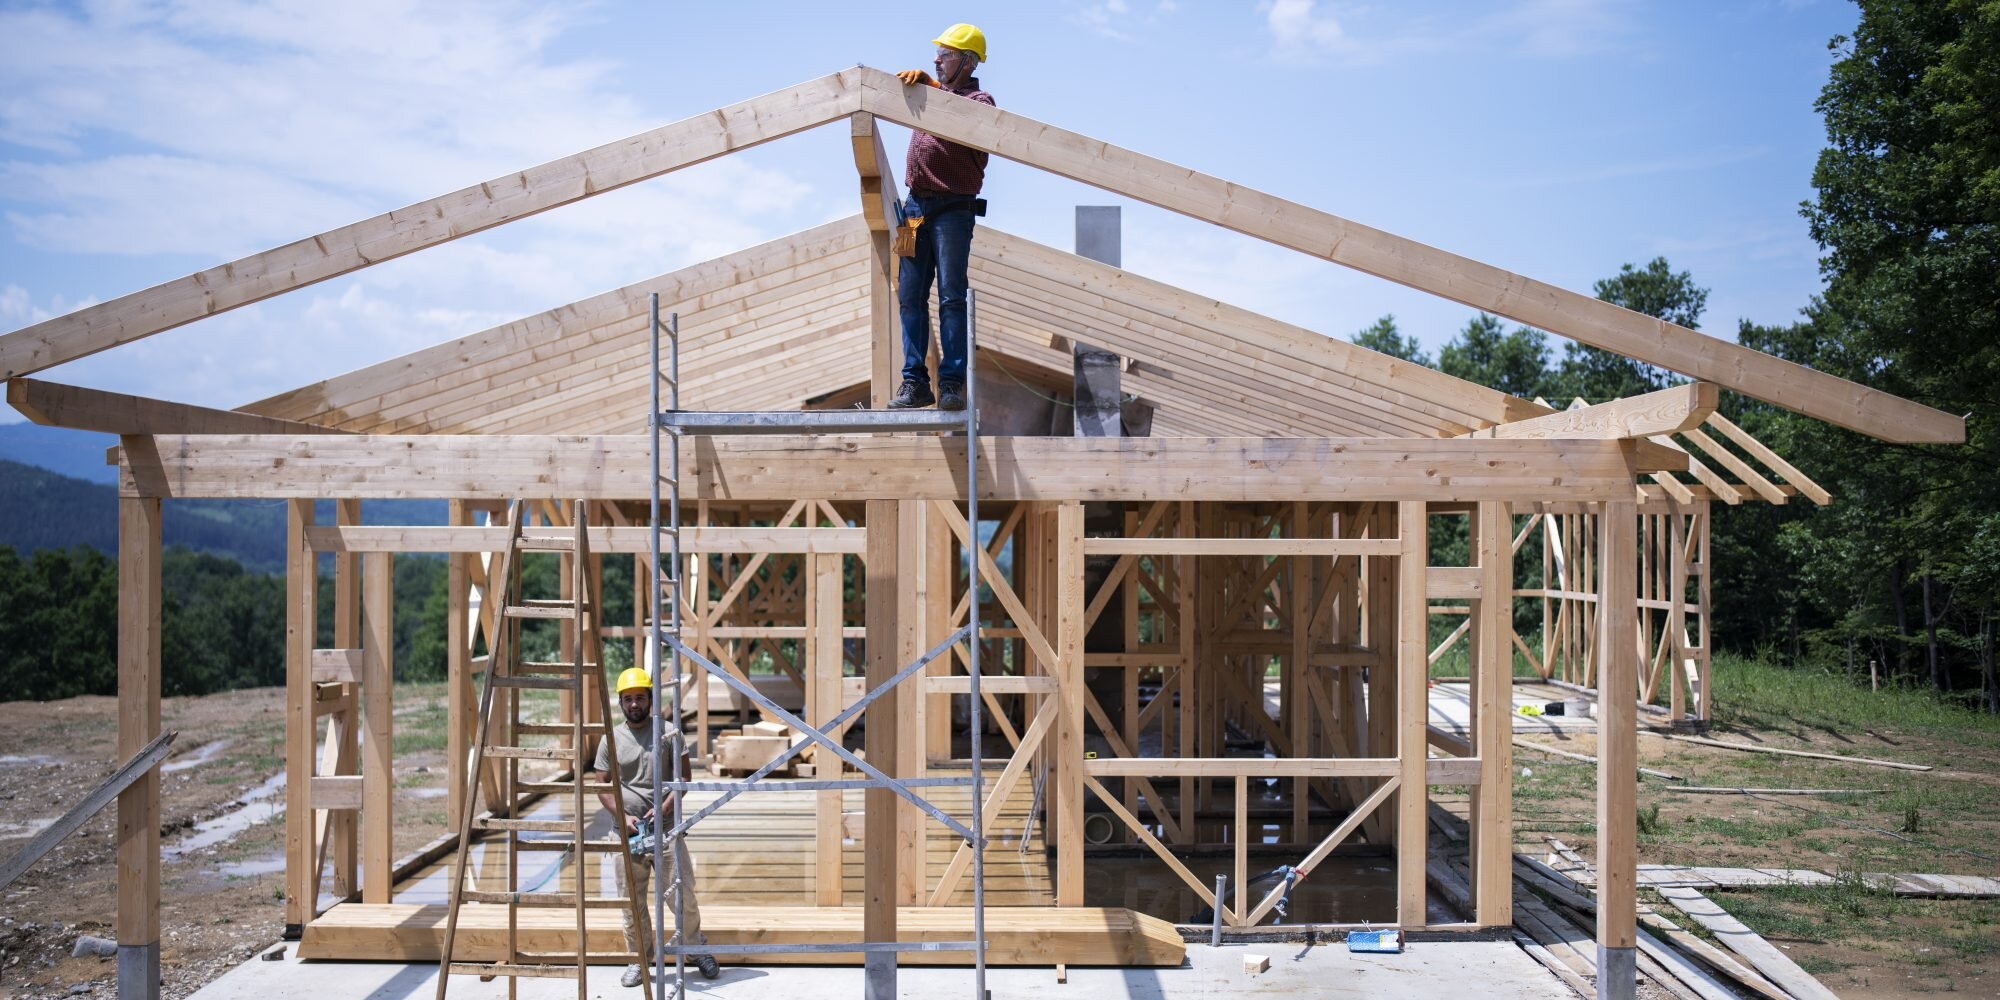 Prices for New Homes Skyrocket Due to Pandemic-Related Lumber Shortage